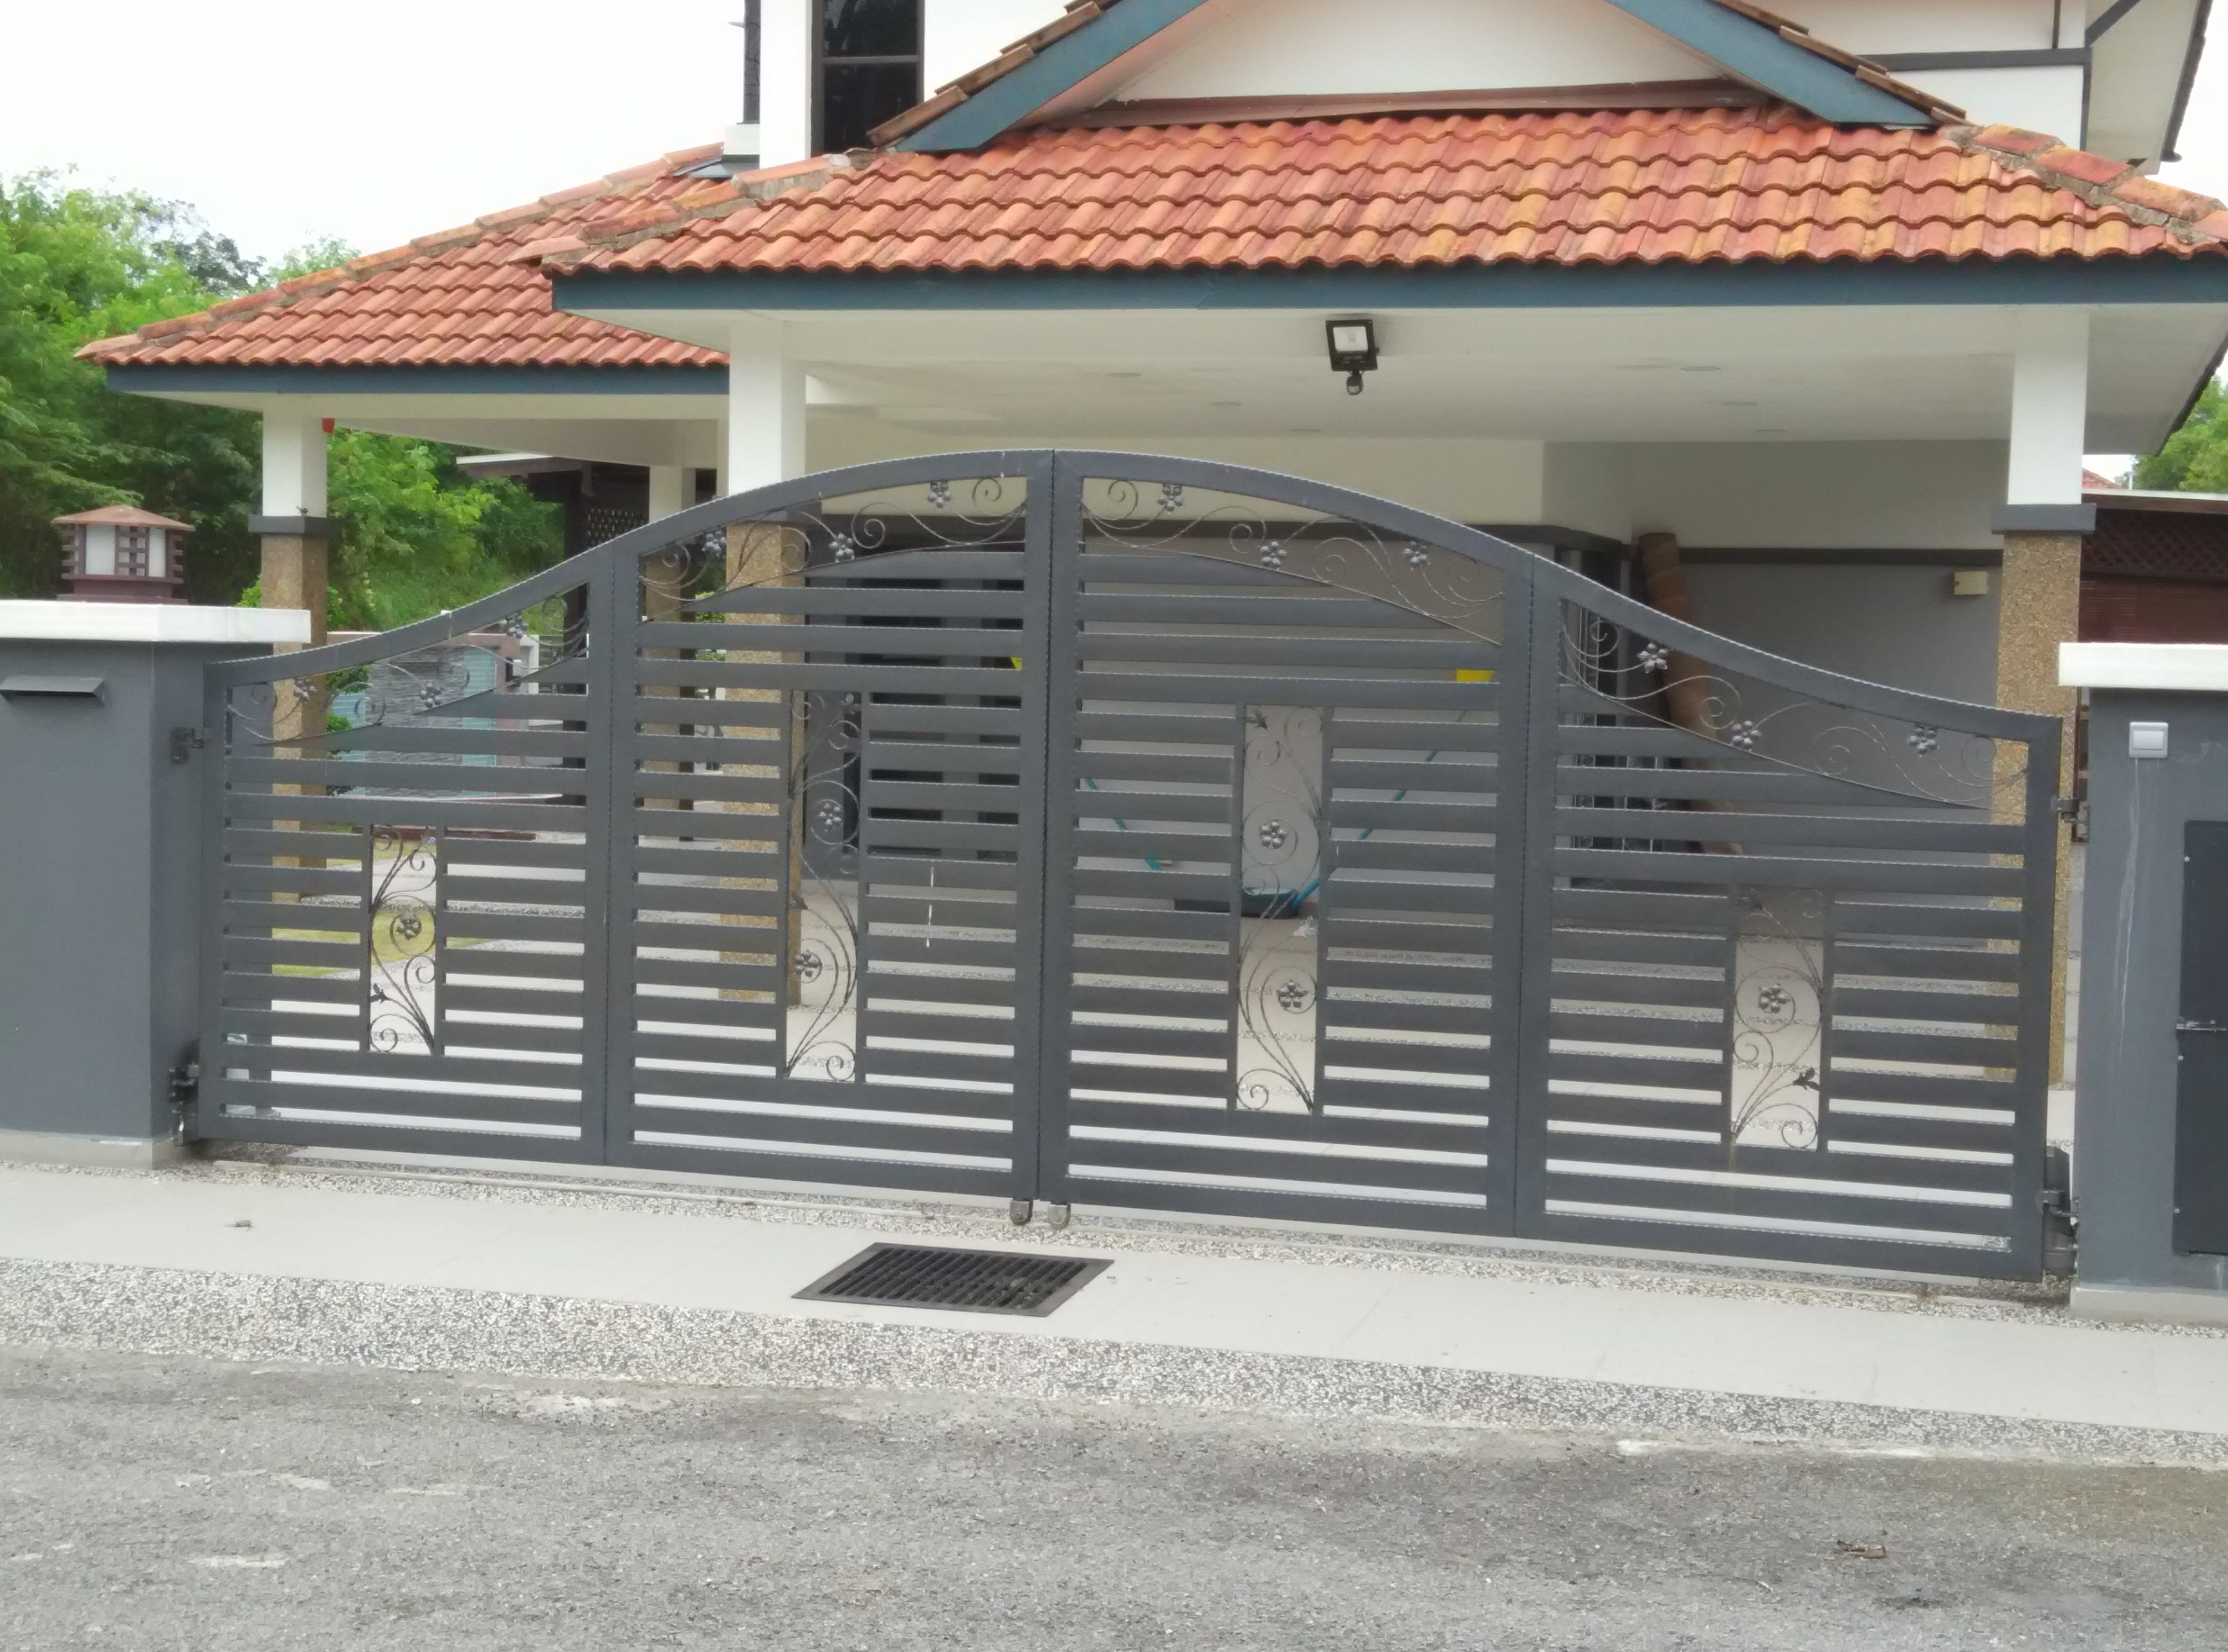 Stainless Steel Entrance Gate 15 | Malaysia Entrance Gate